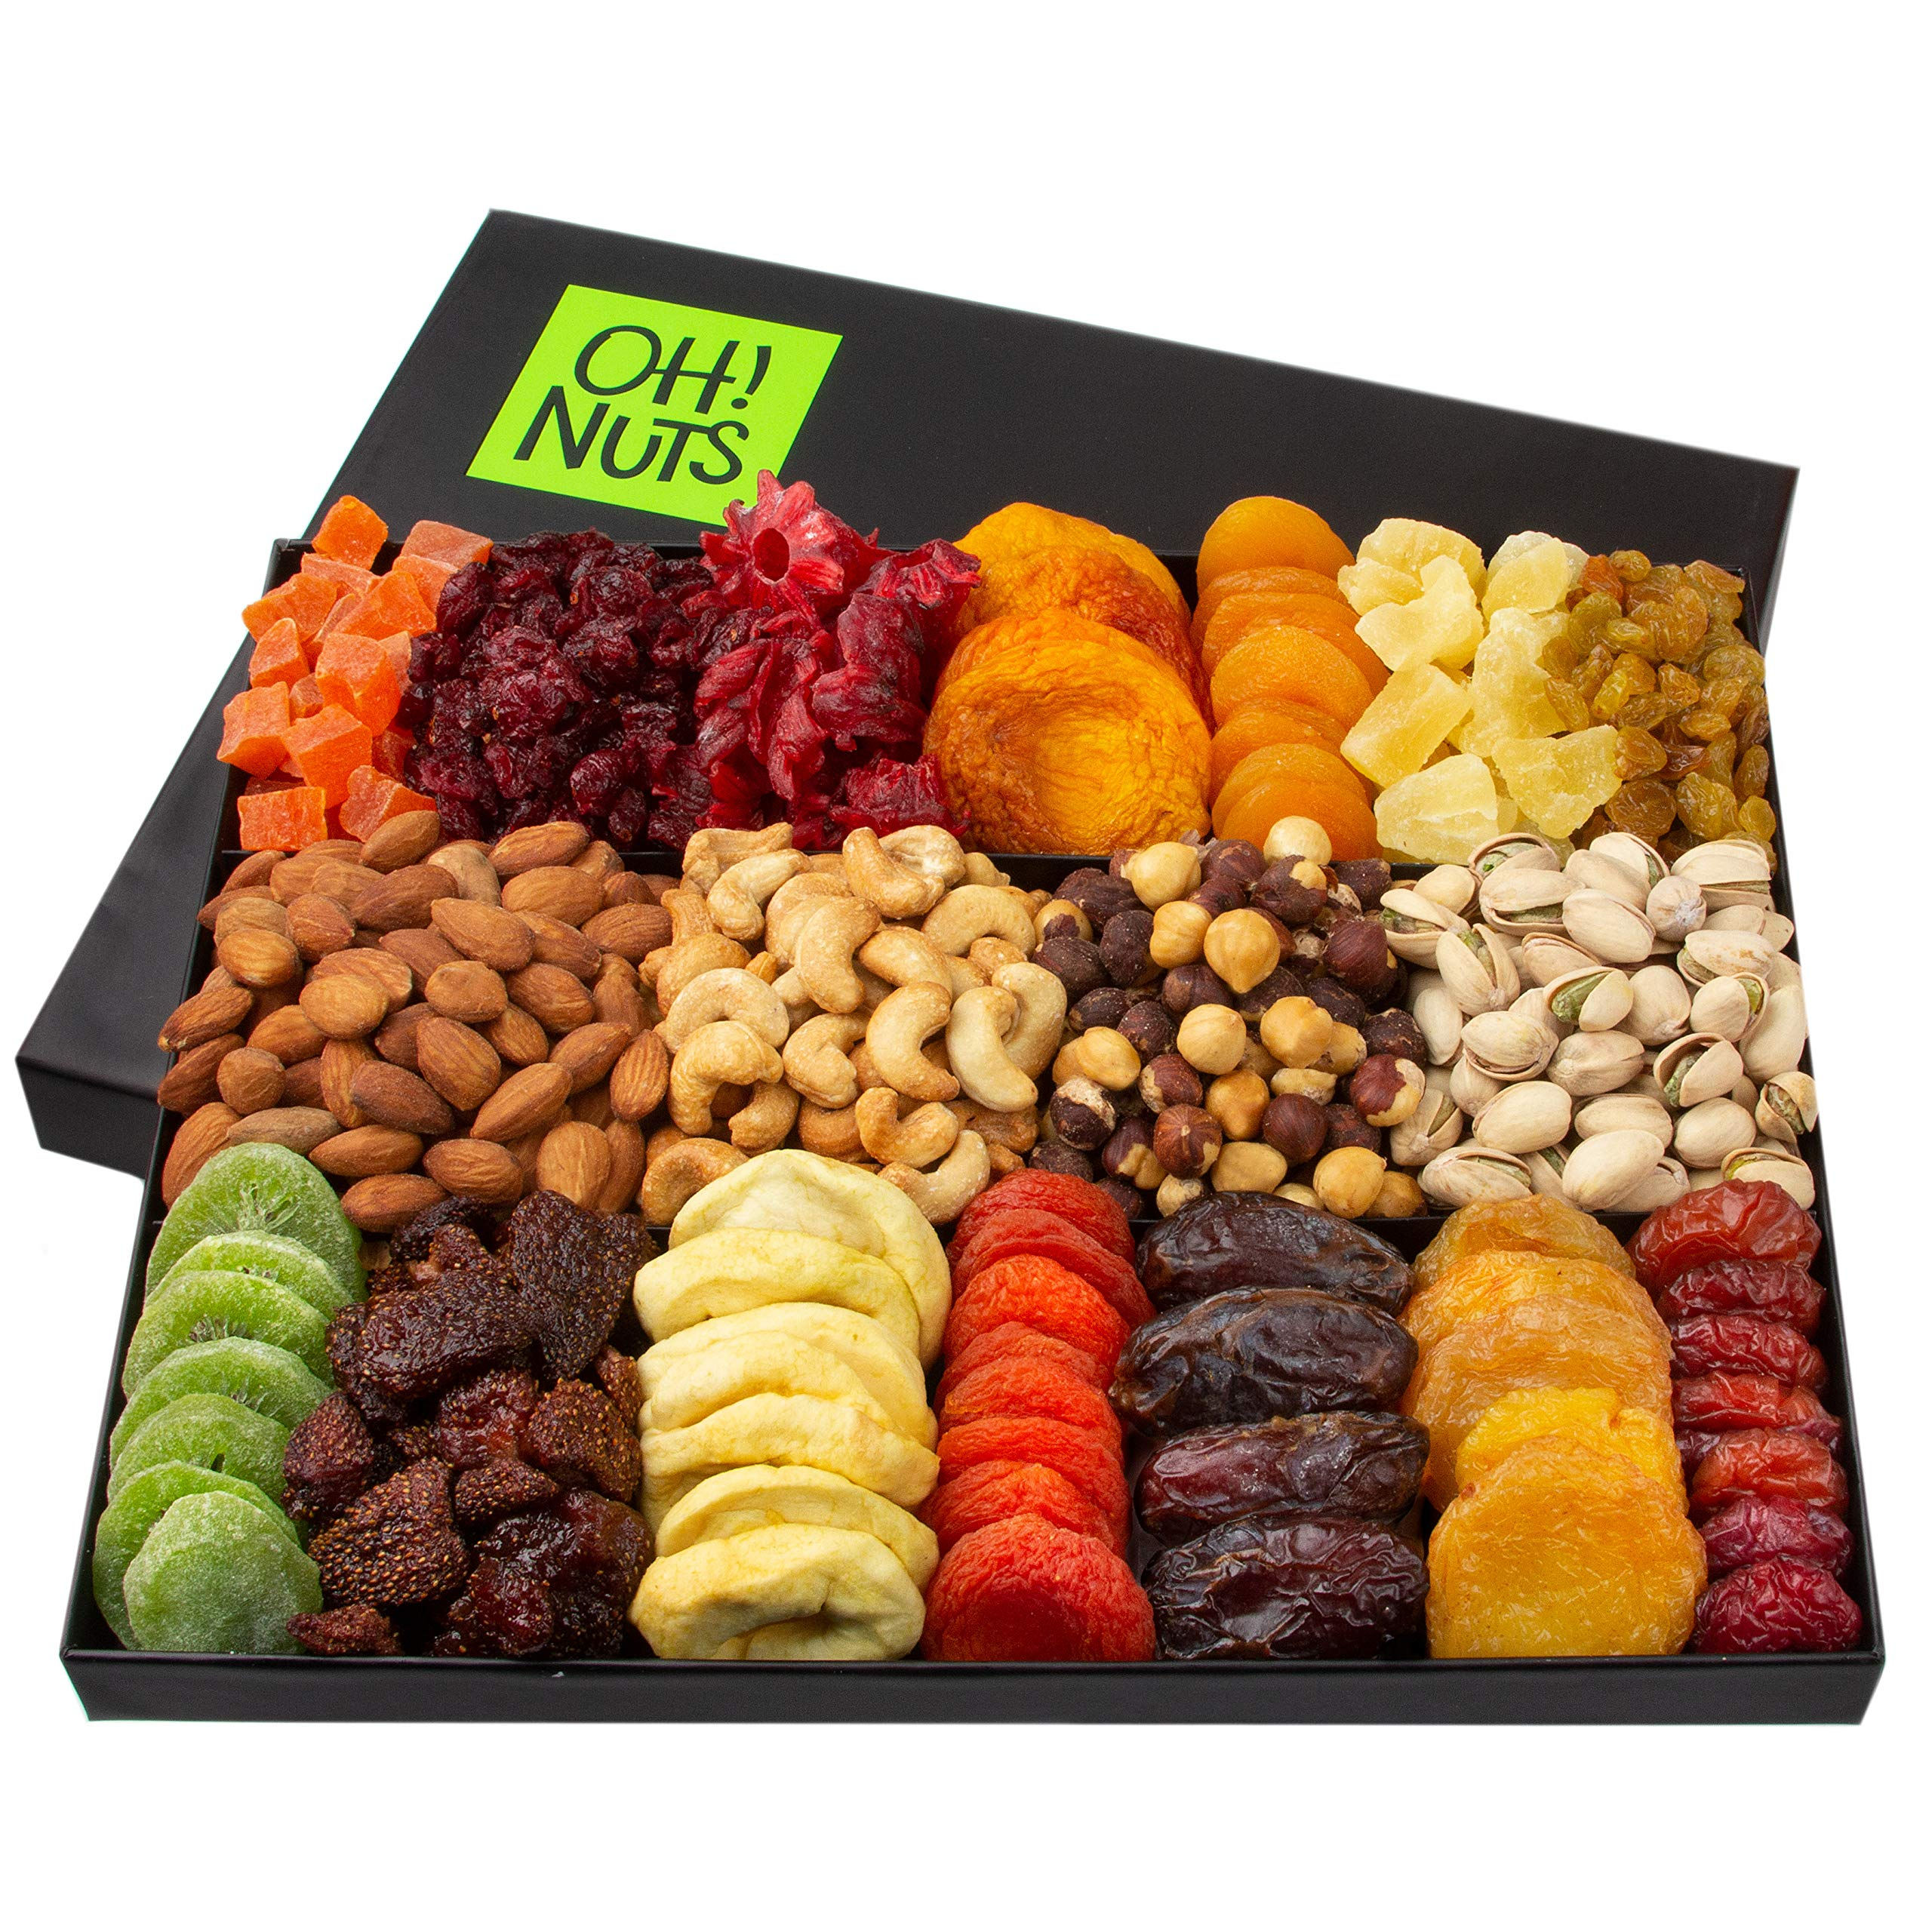 Oh! Nuts 18 Variety Nut & Dried Fruit Gift Basket | Mothers Day, Fathers Day, Easter Gift Basket | Healthy Gourmet Holiday Family Gift Box - Food Snack Set Ideas for Christmas, Birthday Gifts